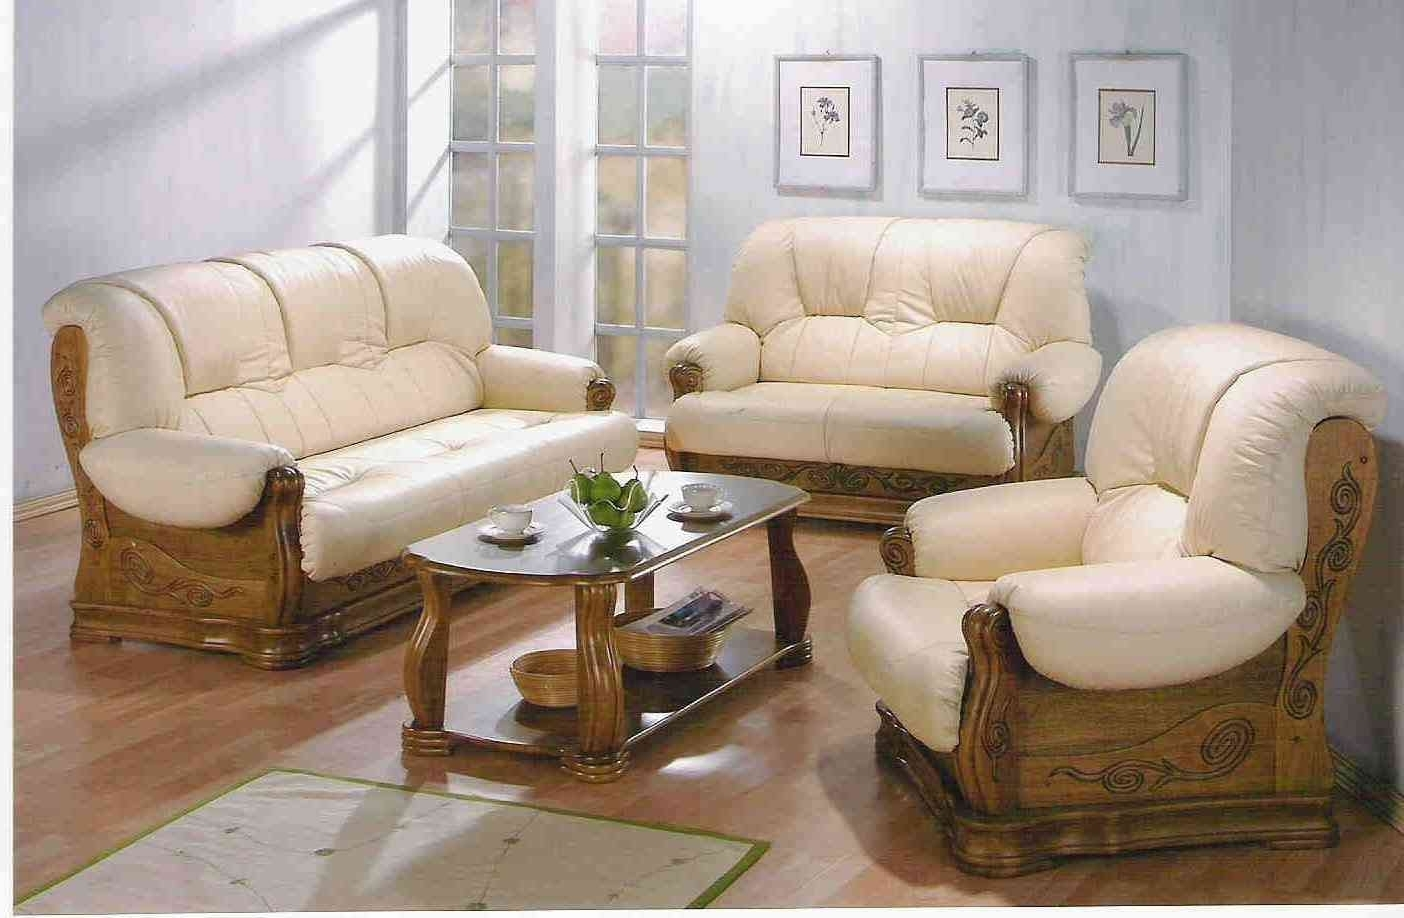 Preferred Casual Sofas And Chairs Regarding Chairs : Traditional Wooden Sofa Set Designs Couch Traditional (Gallery 5 of 20)